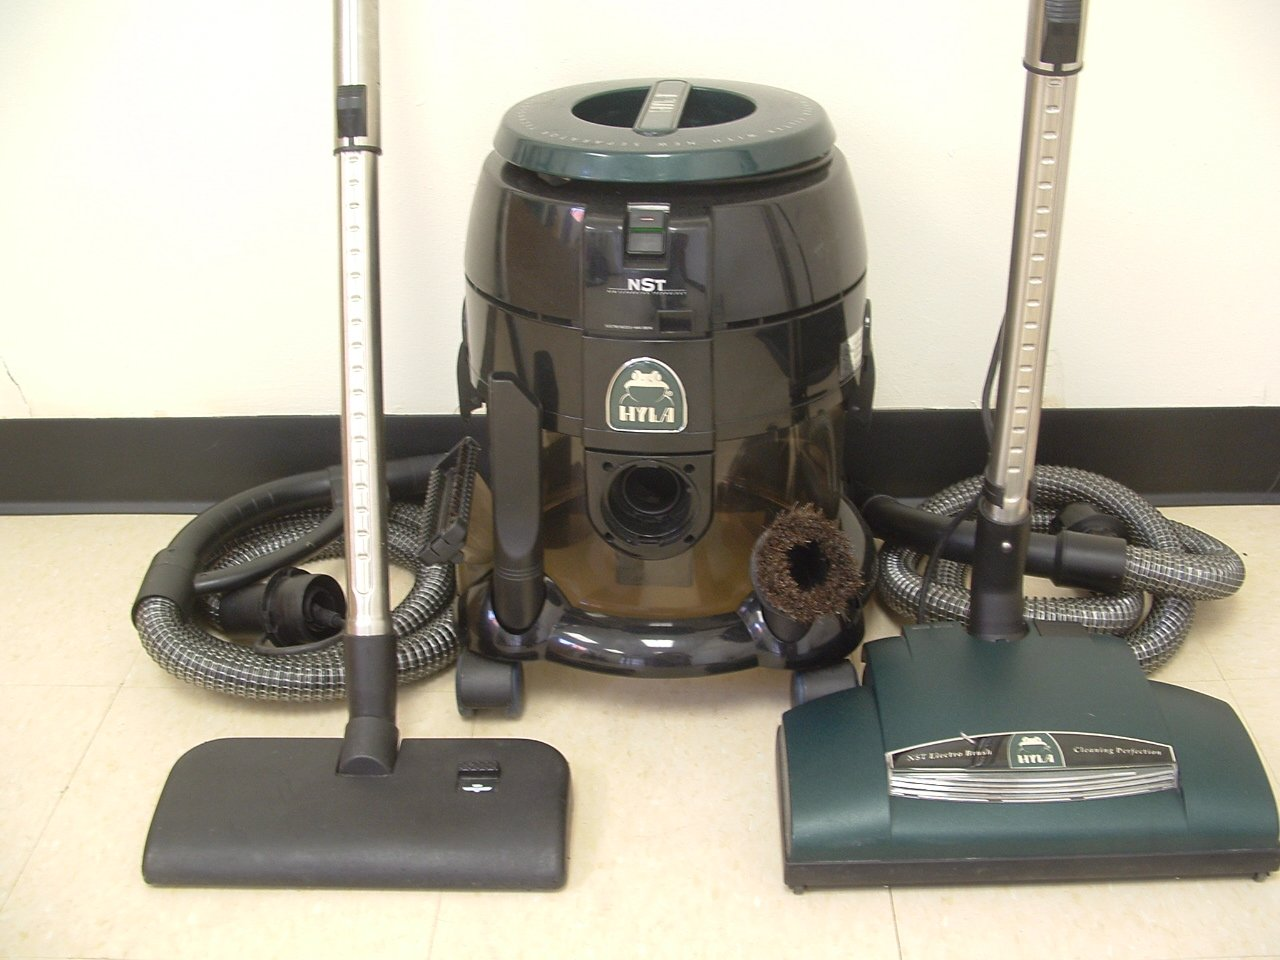 Best Water Filtration Vacuum Cleaners: Hyla NST